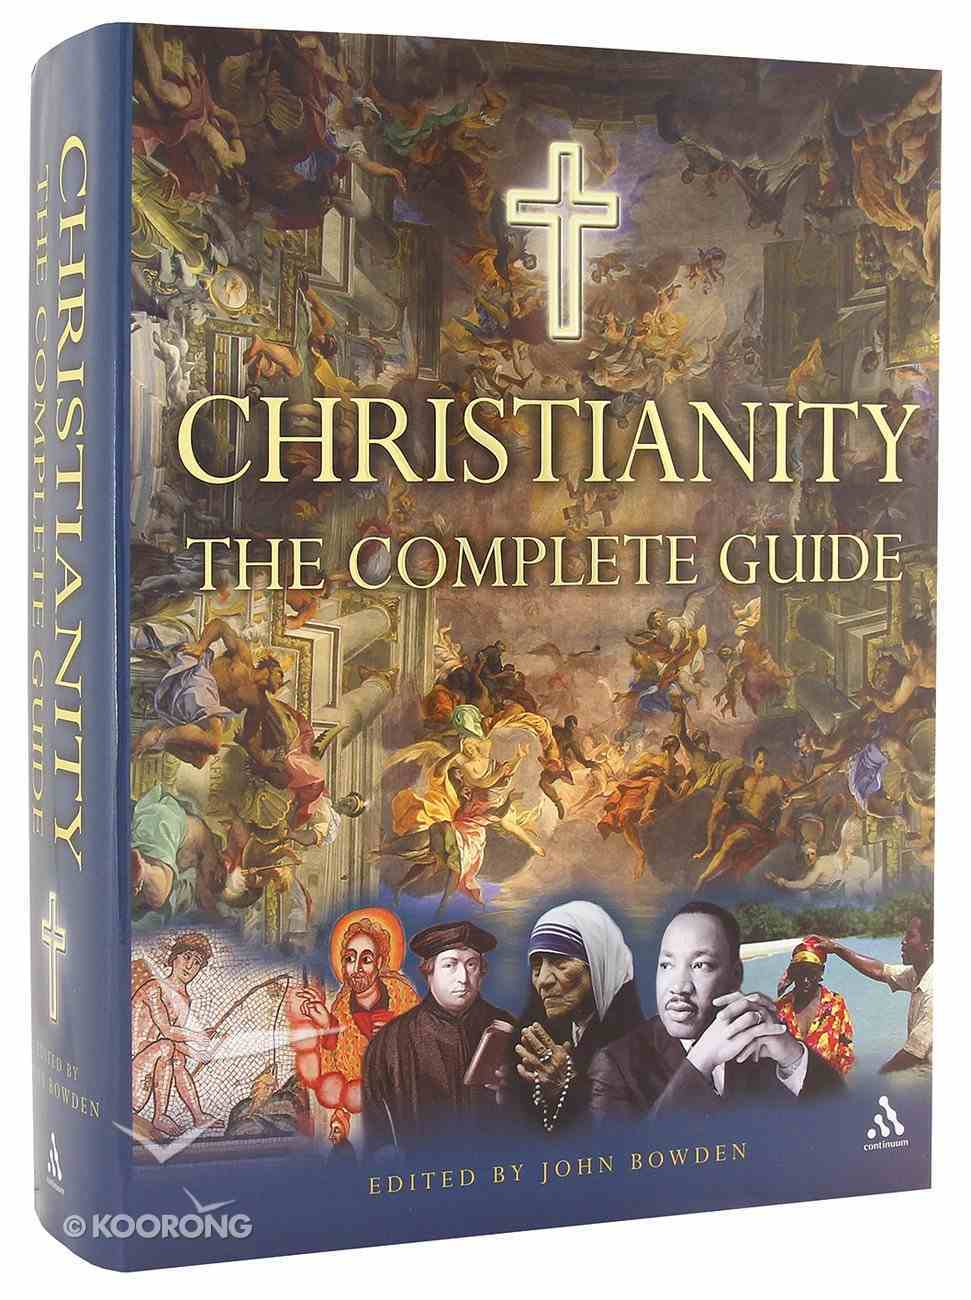 Christianity, the Complete Guide Hardback